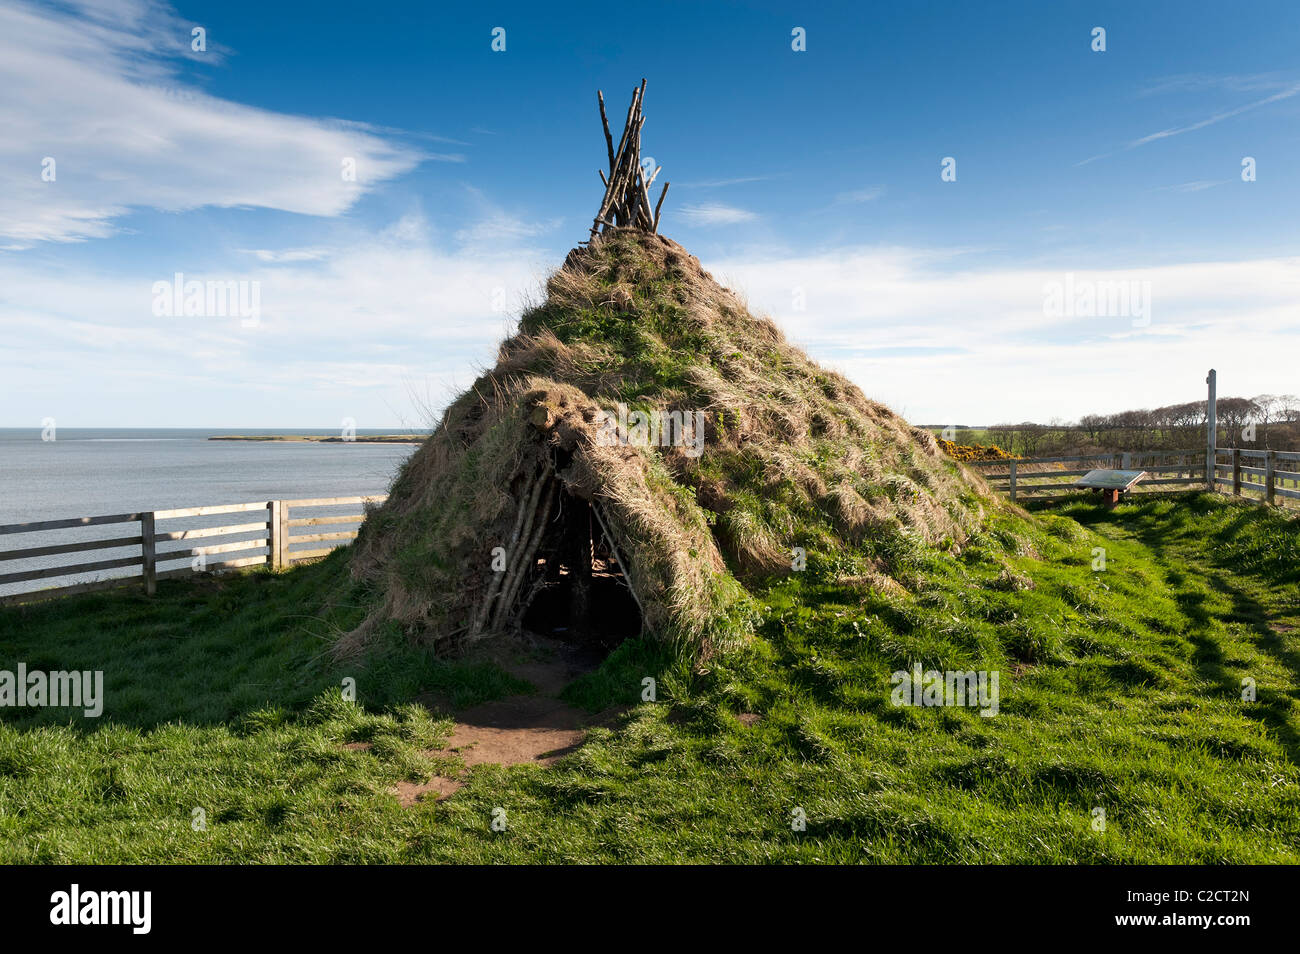 Howick Hill Fort reconstruction of a stone age Mesolithic round house on the Northumberland coast - Stock Image